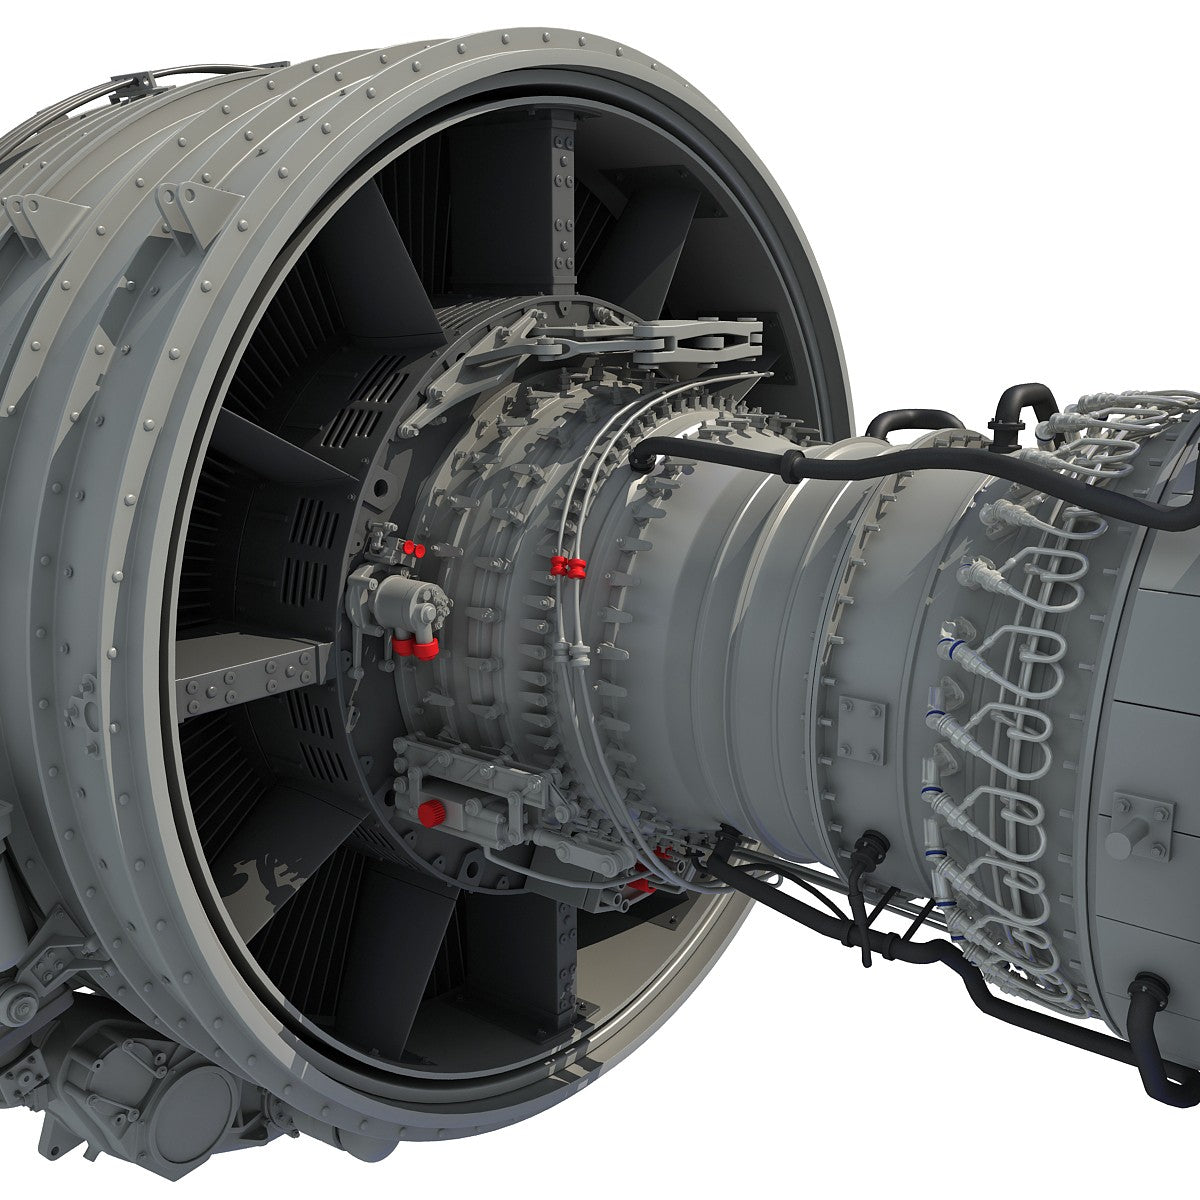 Turbofan Engine 3D Model